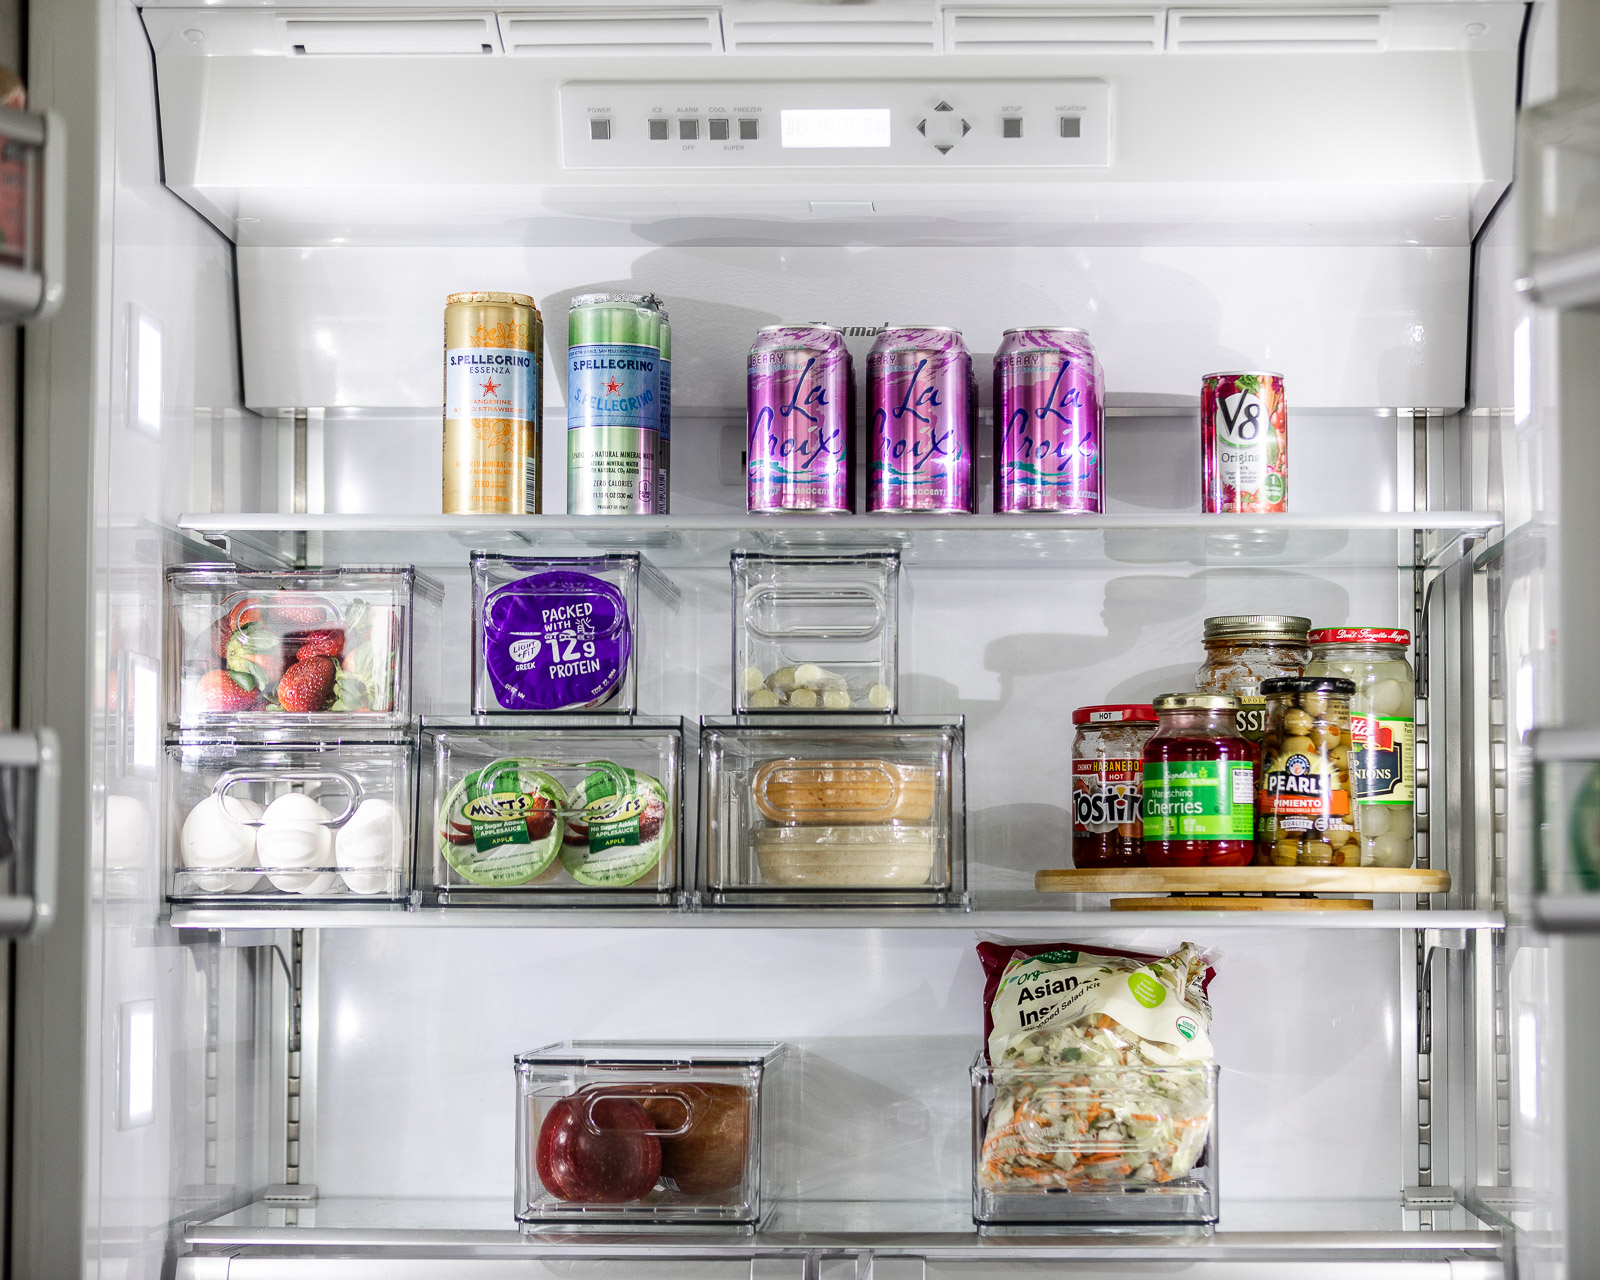 plastic-container-organization-for-refrigerator-The-Glamorous-Gal